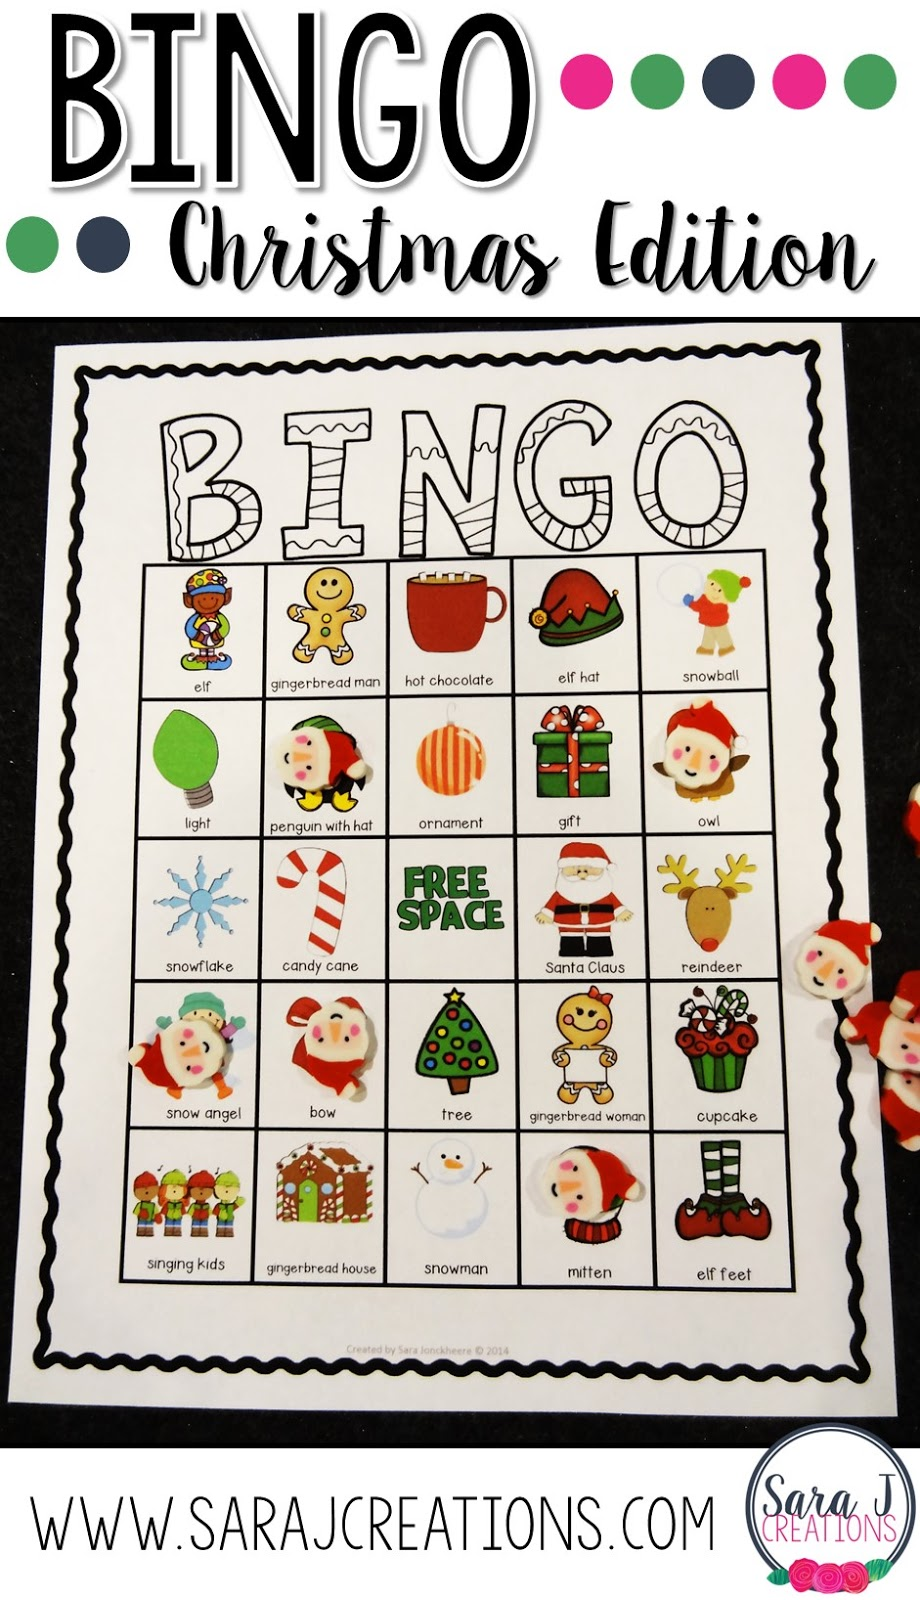 This Christmas bingo game includes 30 different printable cards that make it easy for teachers to print and play with their students.